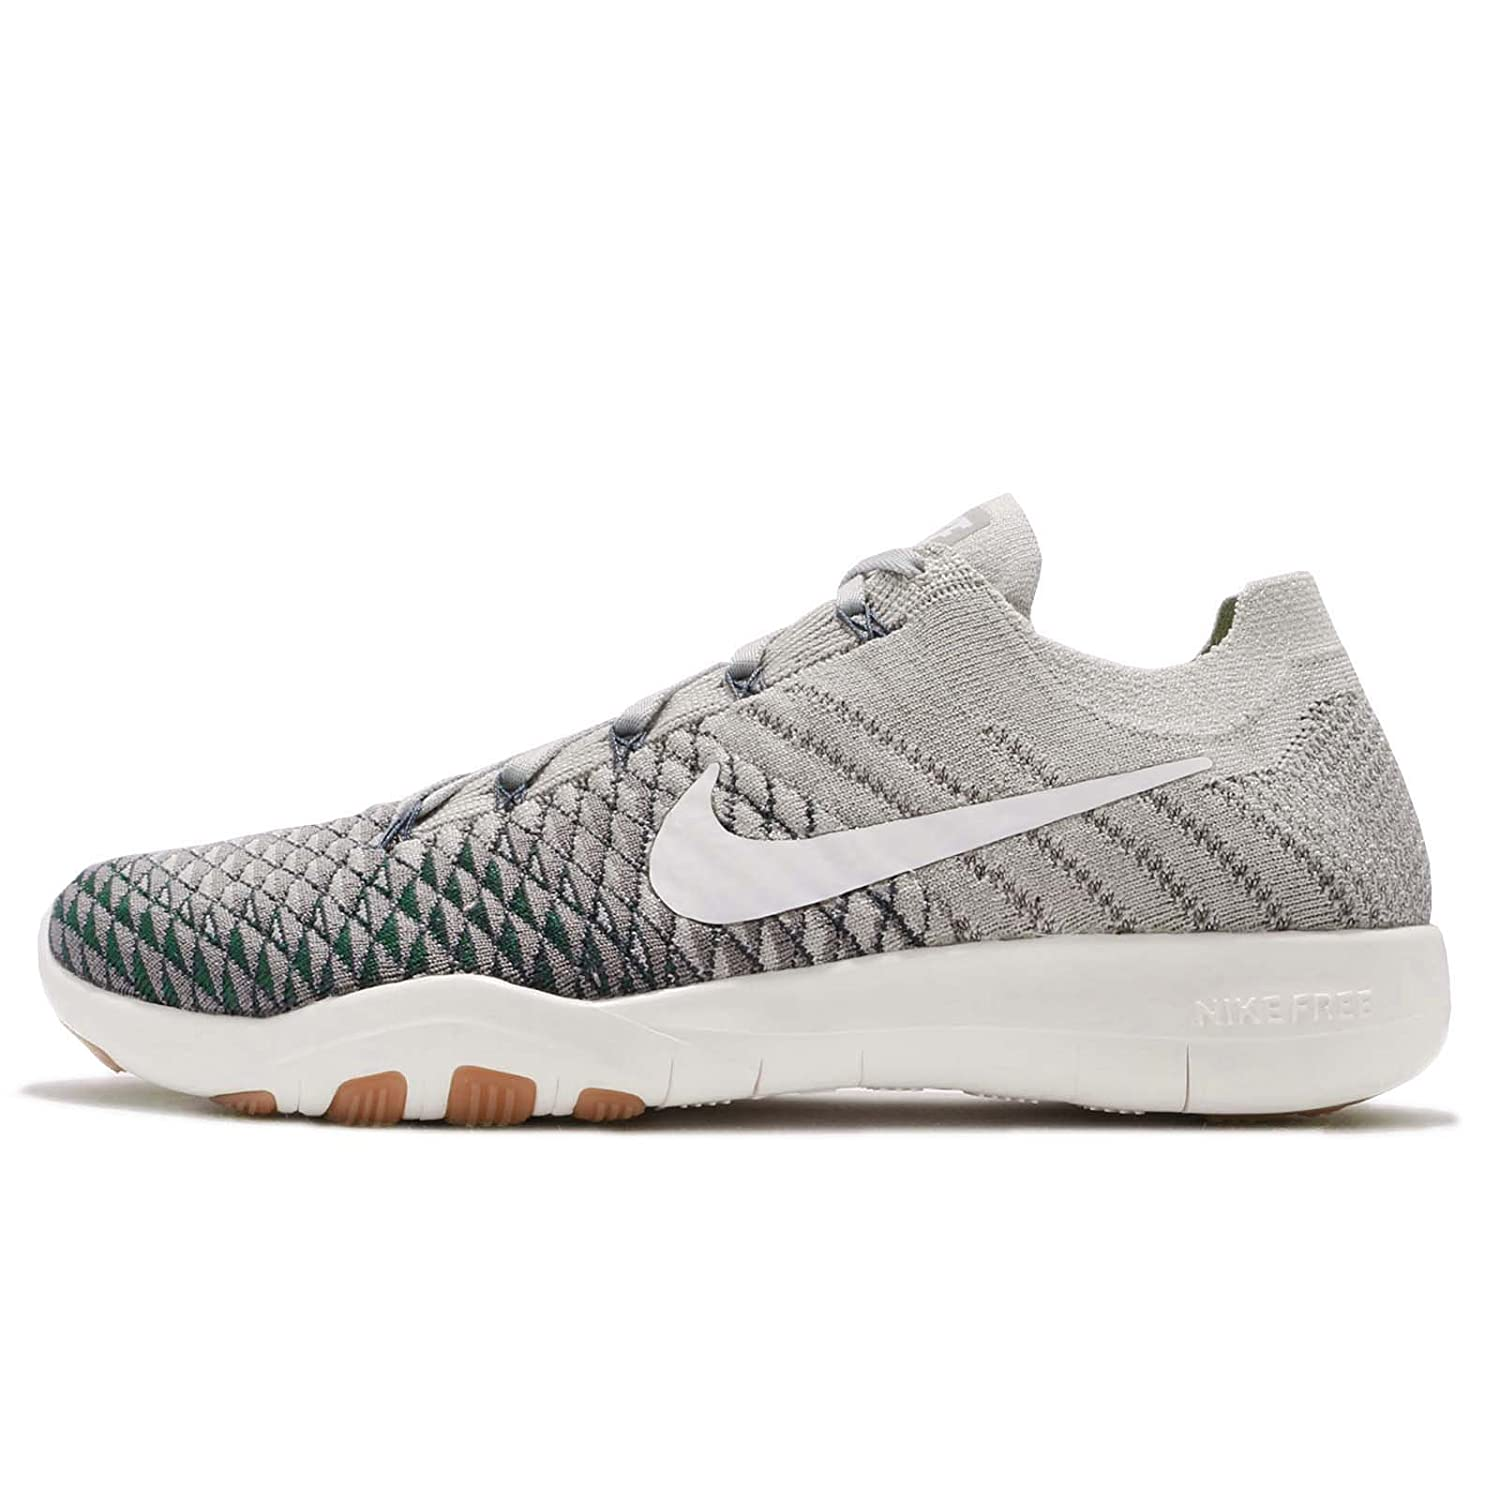 NIKE Free TR Flyknit 2 Womens Running Shoes B076PWGBFP 10 B(M) US|Pale Grey/Light Charcoal/Vintage Green